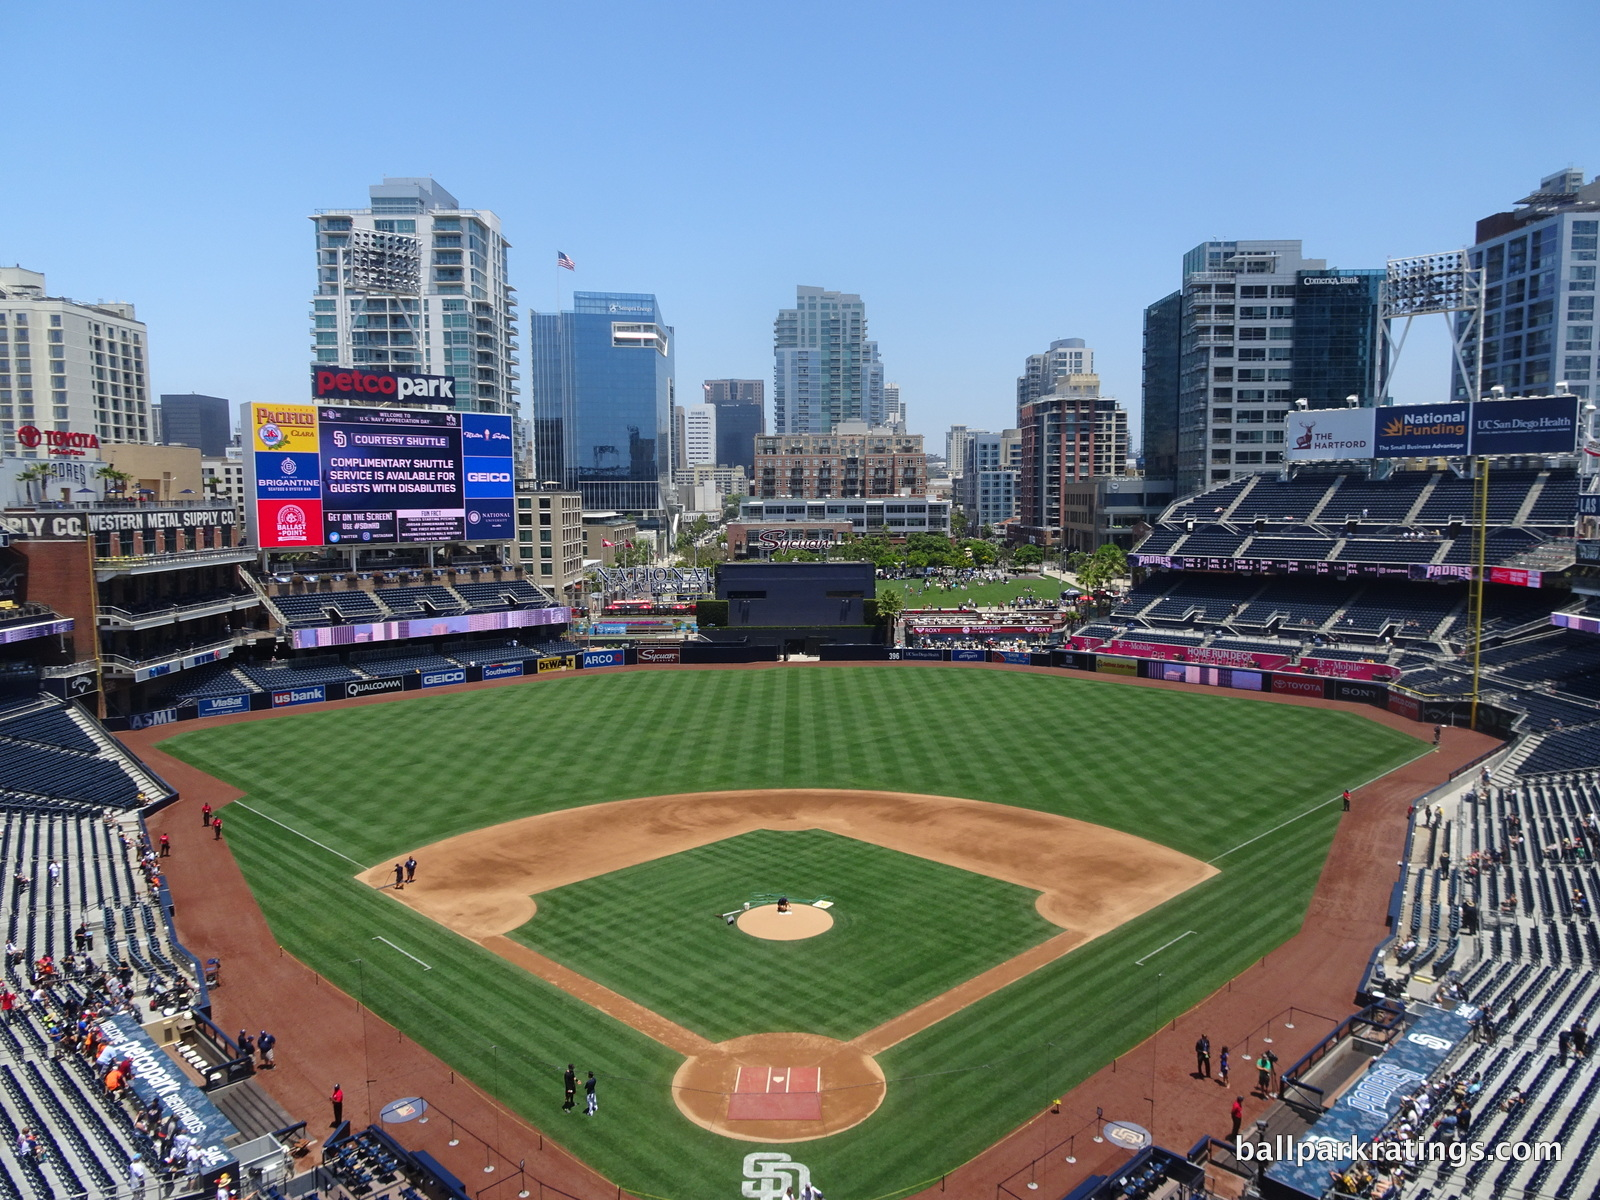 Petco Park Best Park in Baseball